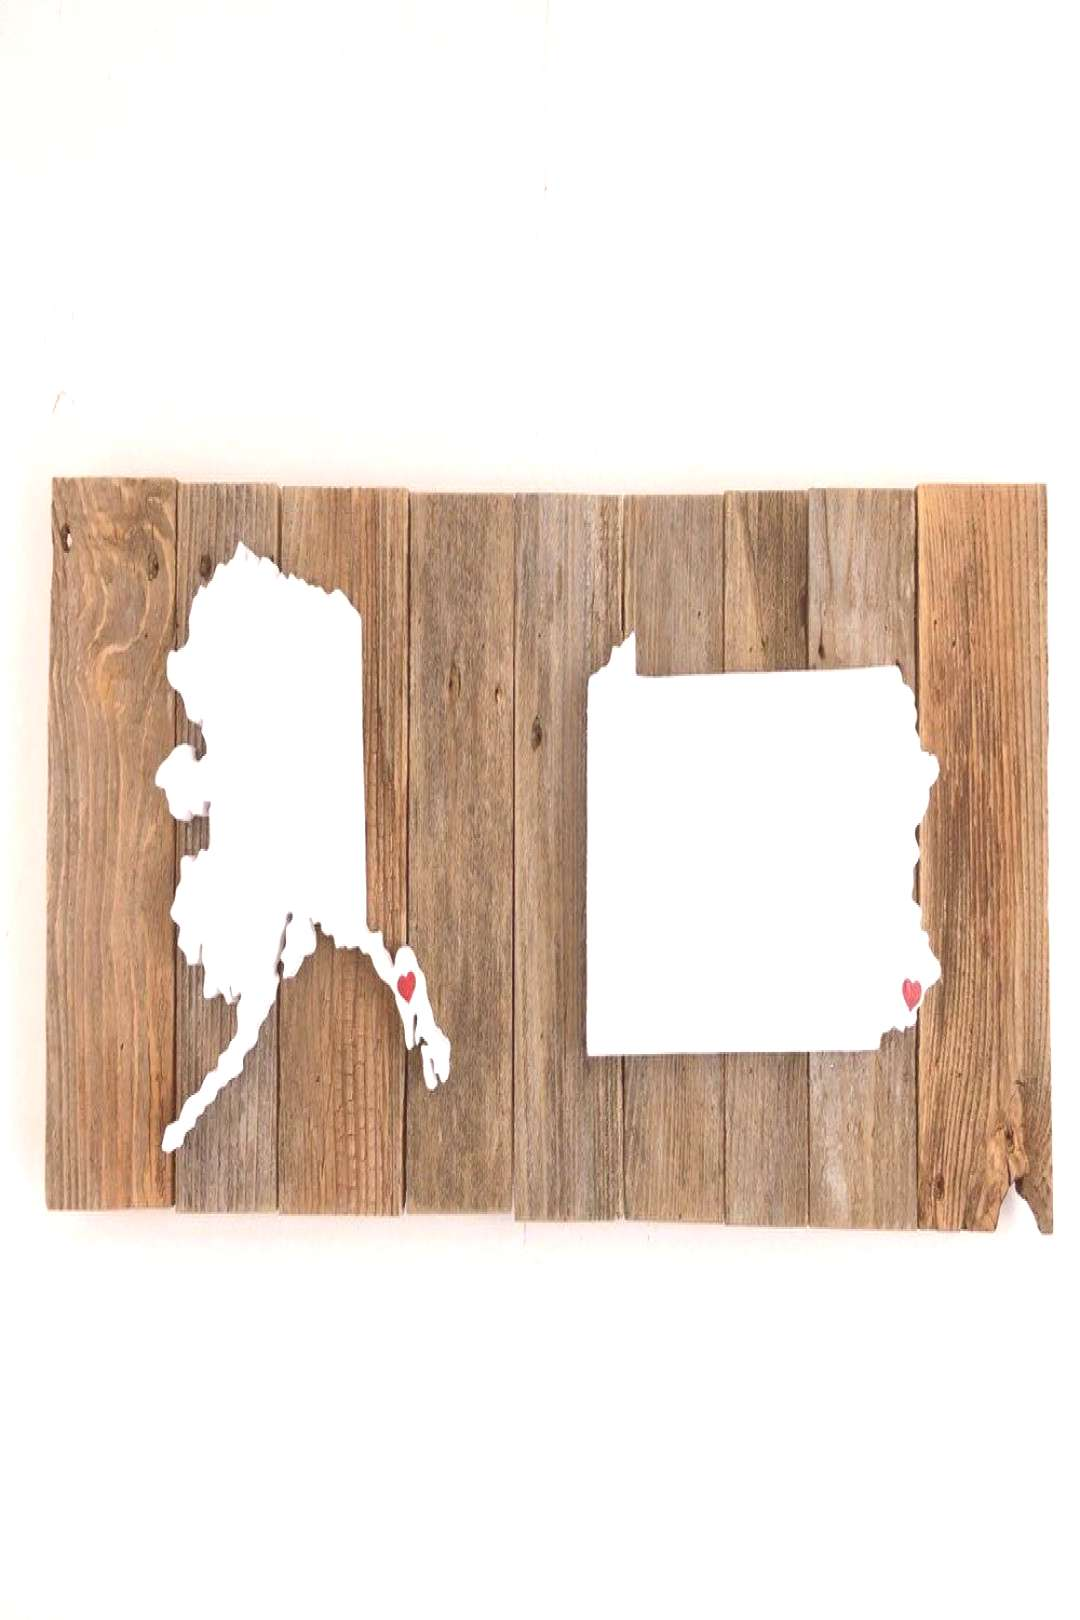 Excited to share this item from my shop Alaska and Pennsylvania Maps- Two Maps (Choose Any 2 Maps)